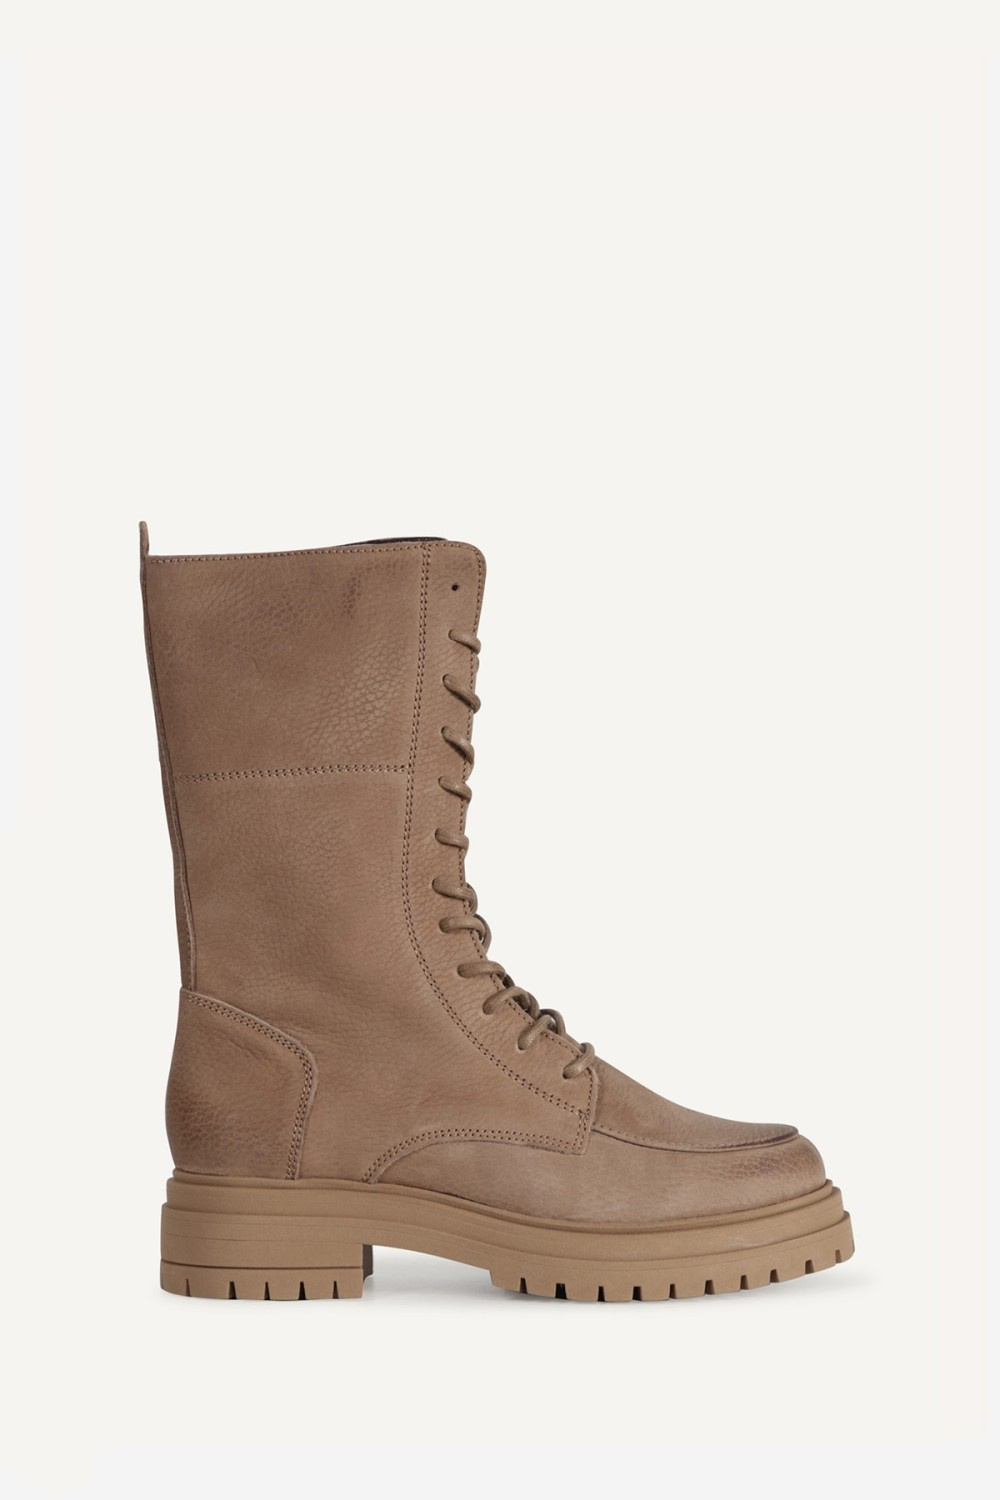 Shoecolate Laars Taupe 8.21.08.158